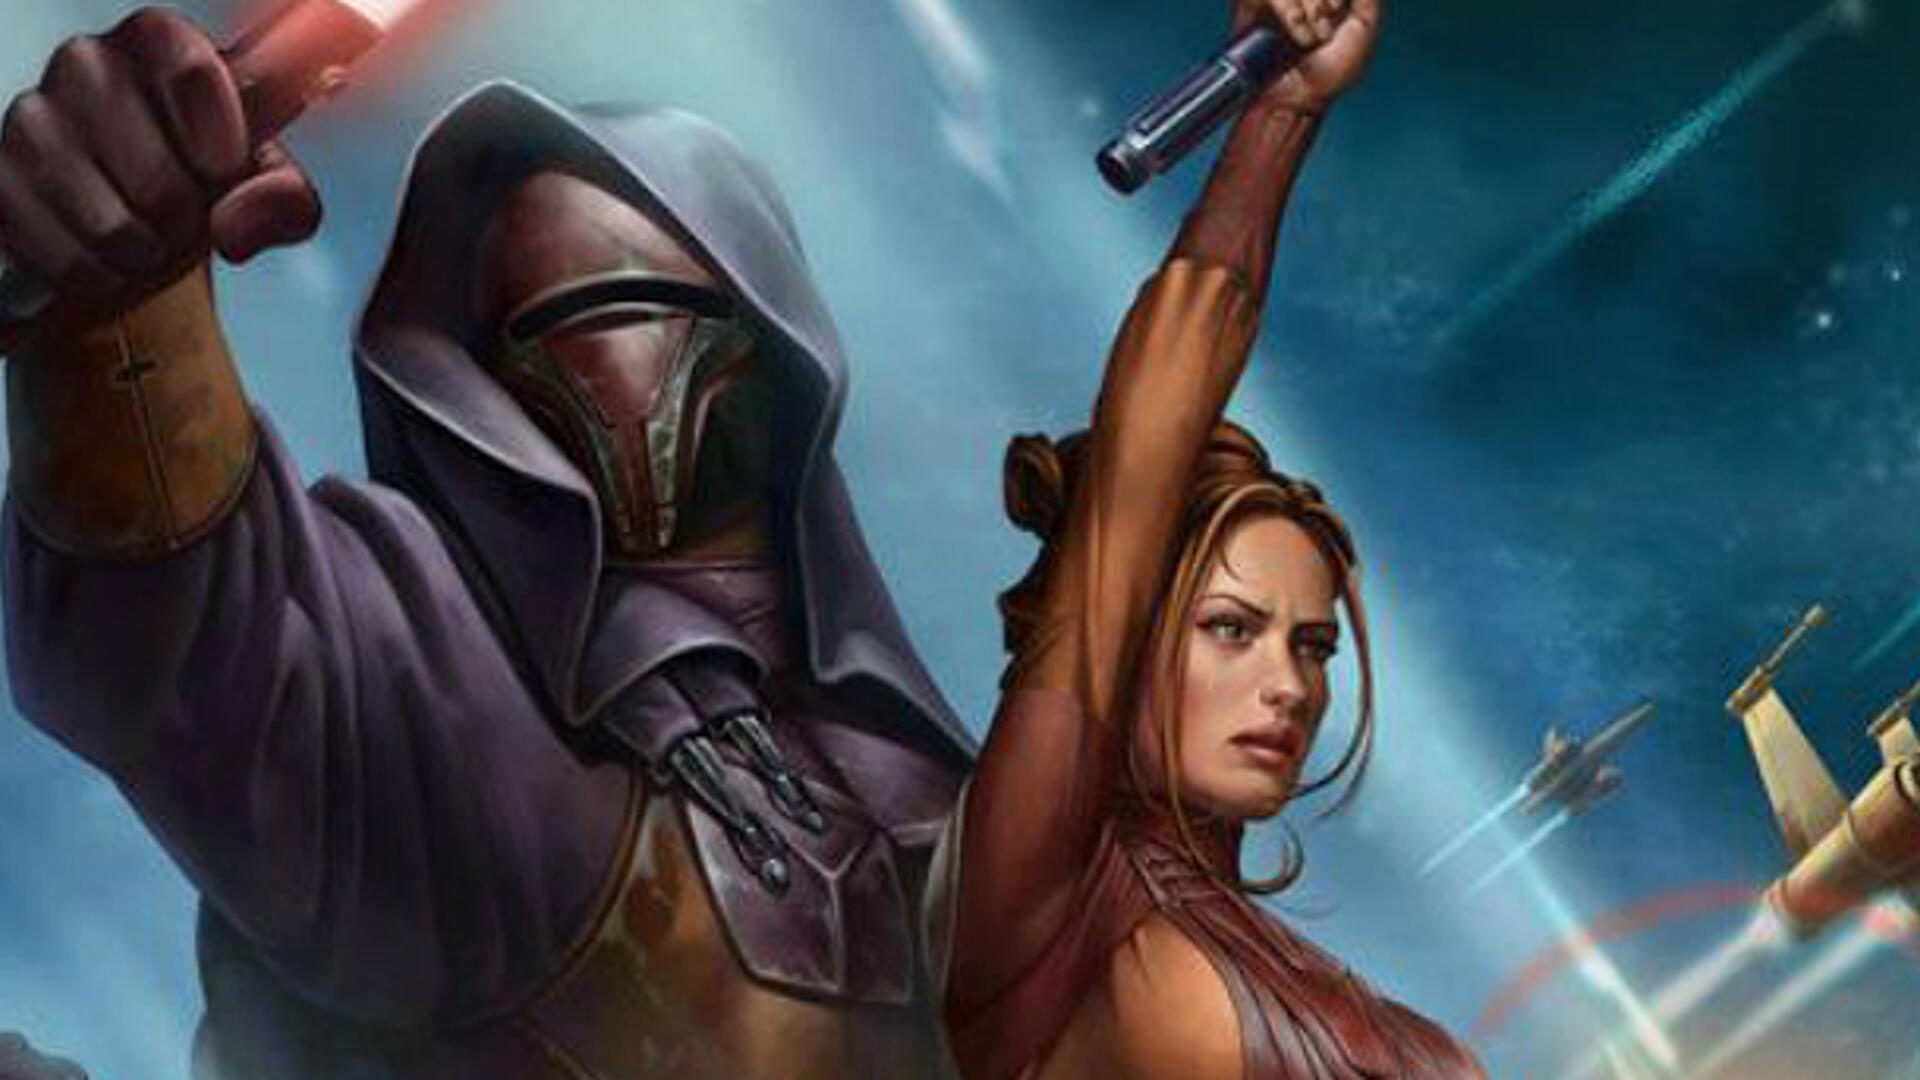 The Top 25 RPGs of All Time #12: Star Wars: Knights of the Old Republic